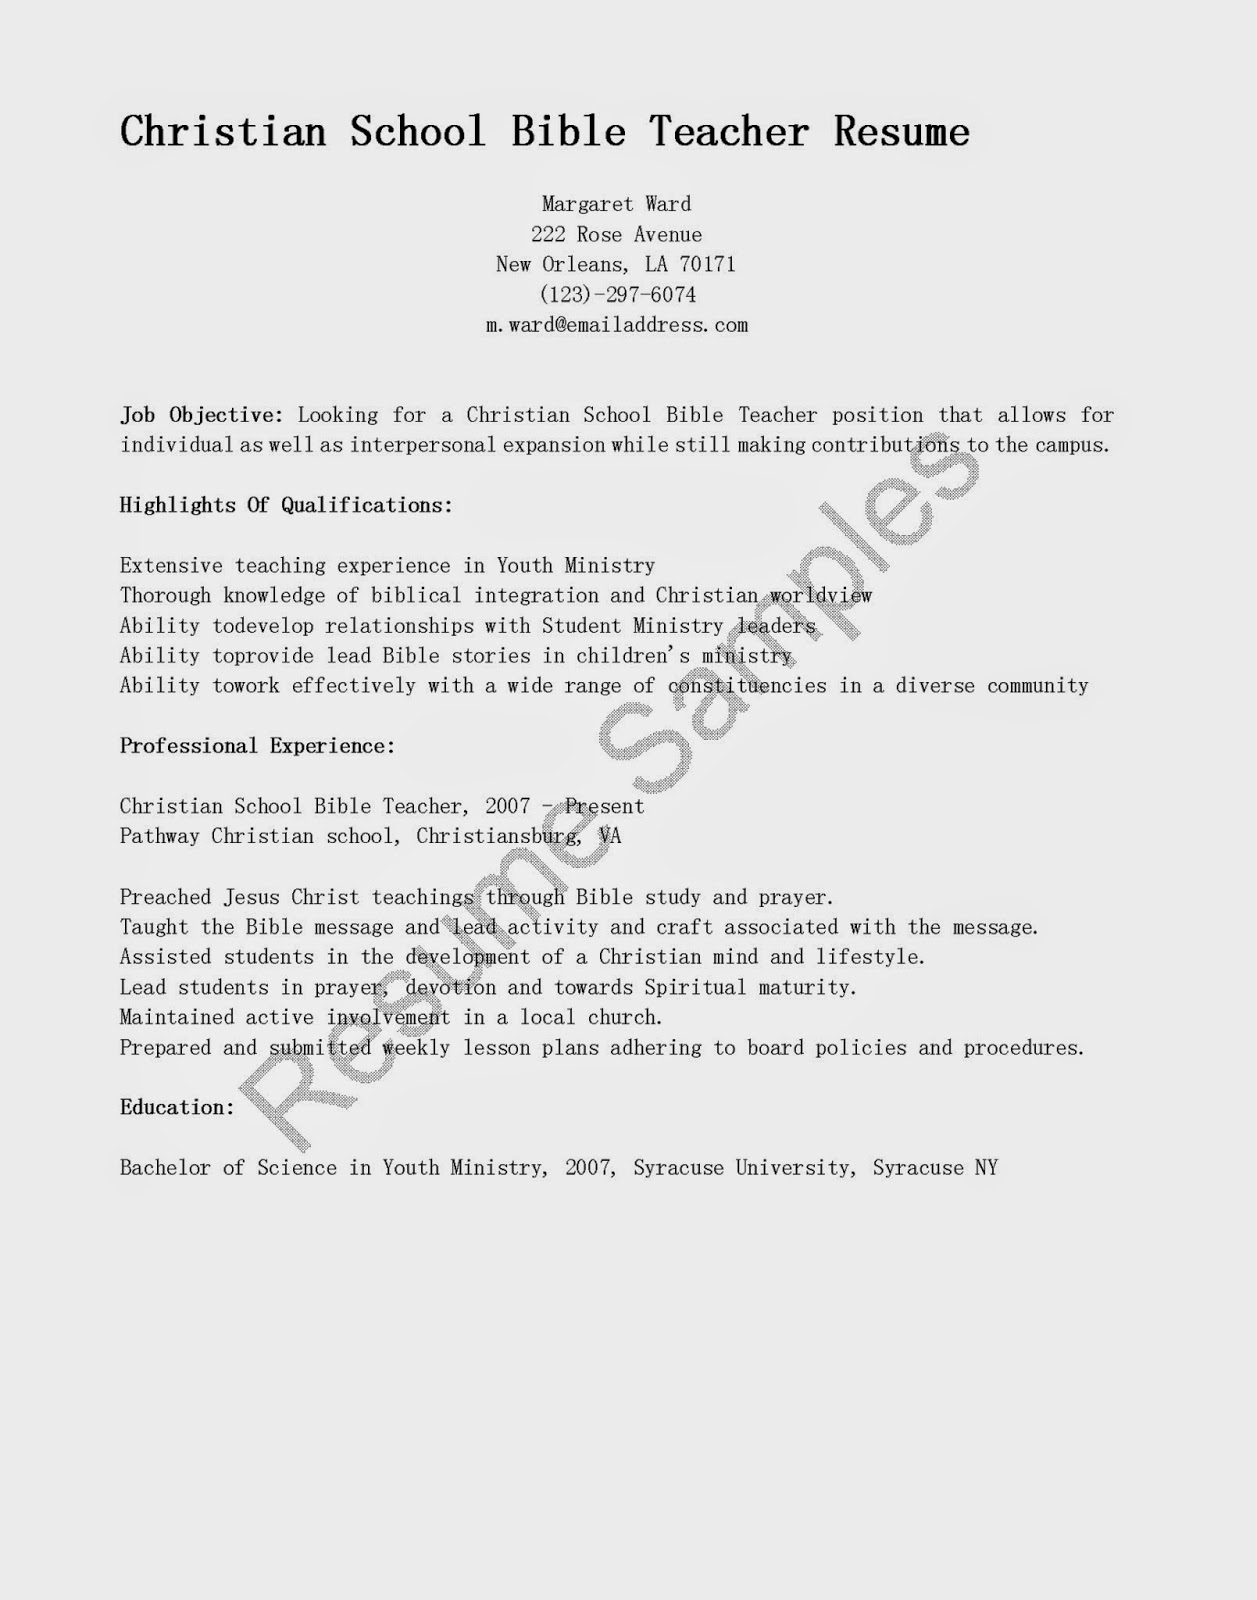 resume samples  christian school bible teacher resume sample